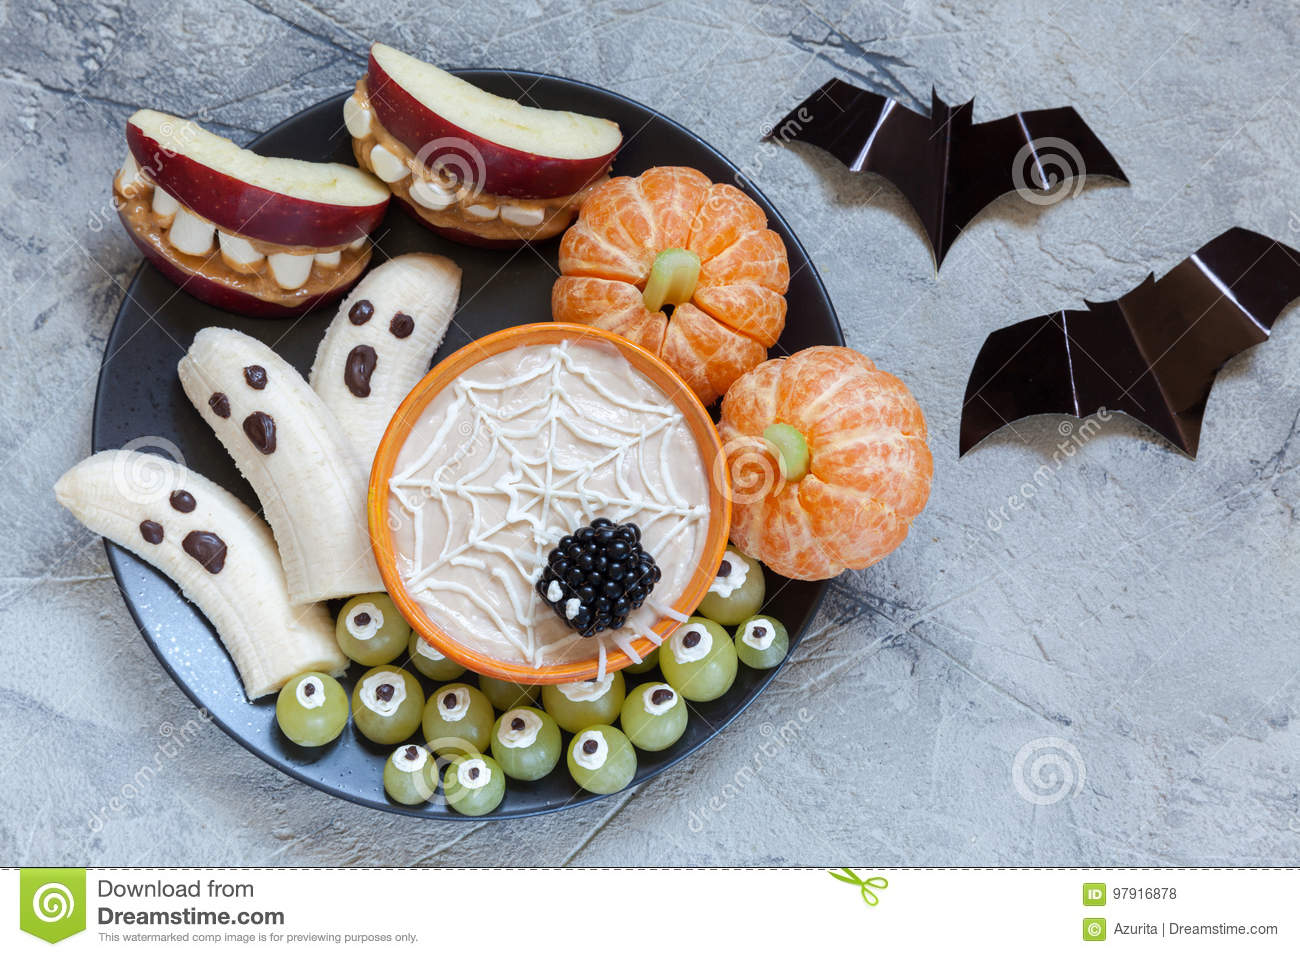 Download Fruit Halloween Treats. Banana Ghosts And Clementine Orange Pumpkins, Apple Monster Mounts And Spider Web Stock Photo - Image of creative, food: 97916878